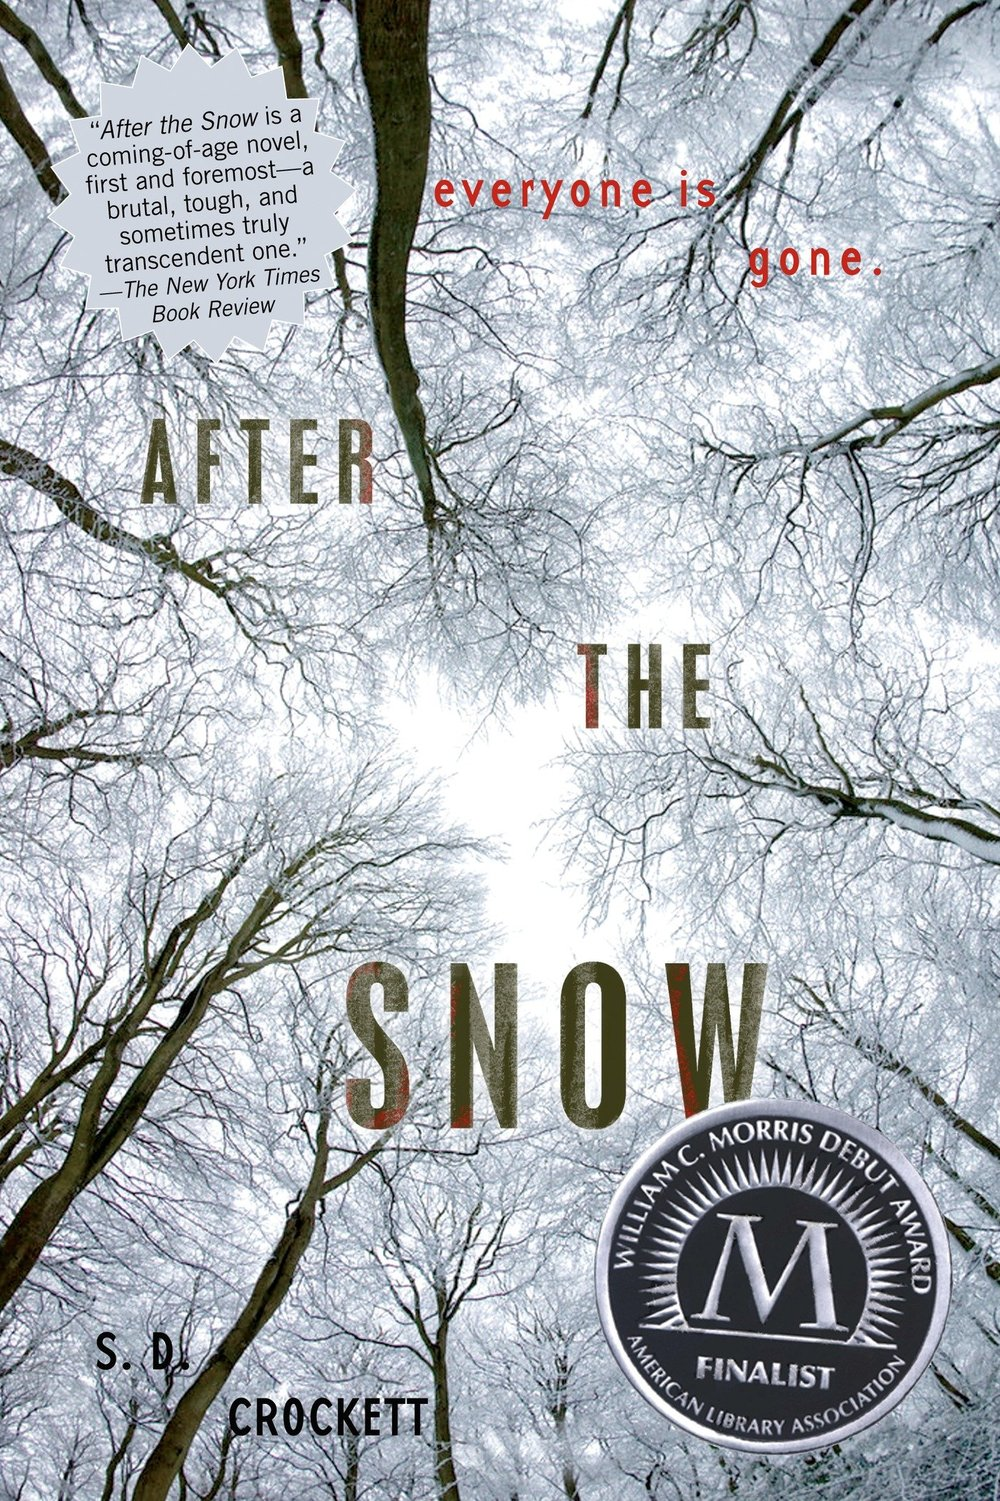 After the Snow , by S.D. Crockett